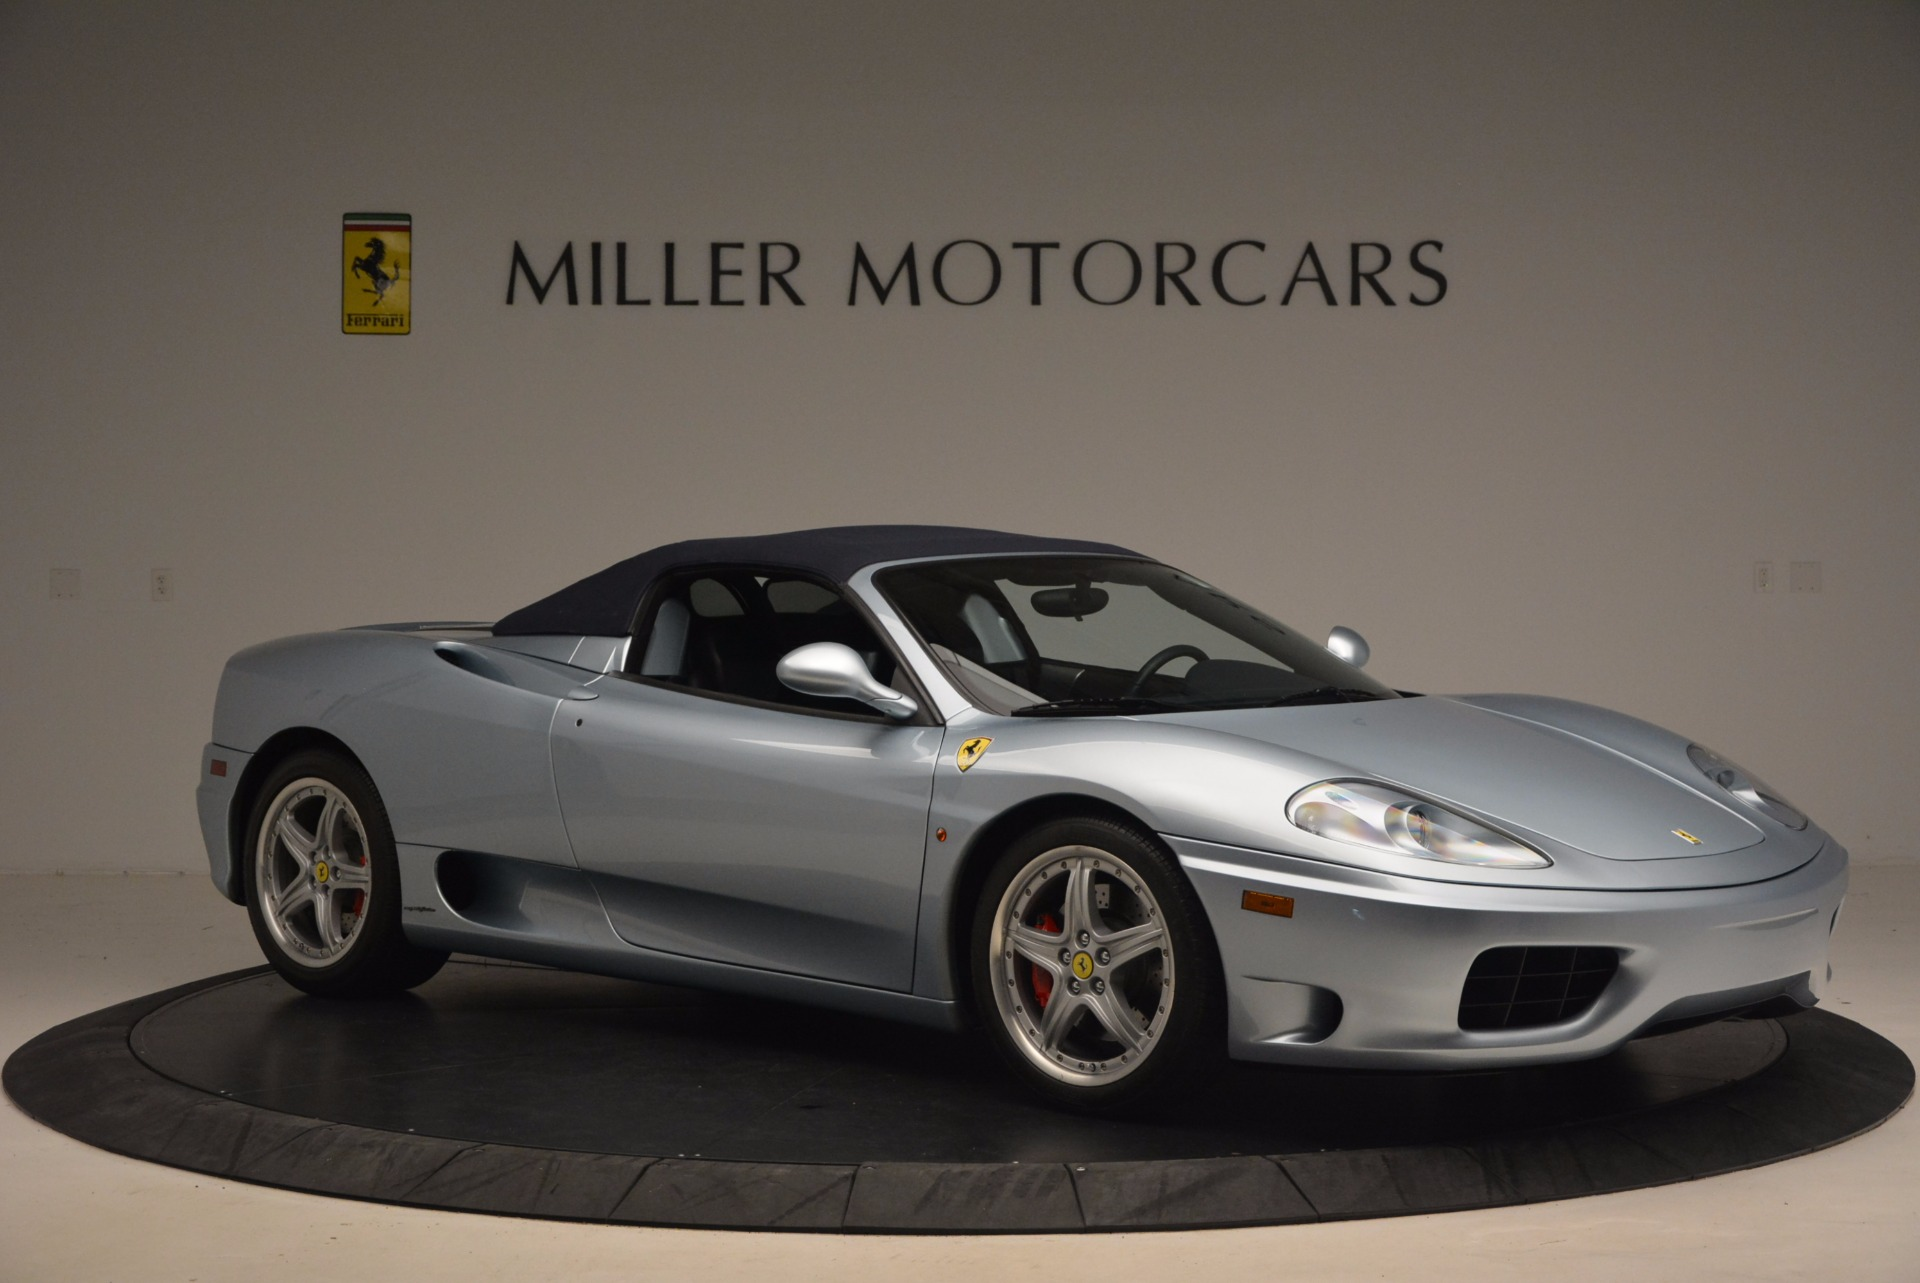 Used 2003 Ferrari 360 Spider 6-Speed Manual For Sale In Greenwich, CT 1445_p22